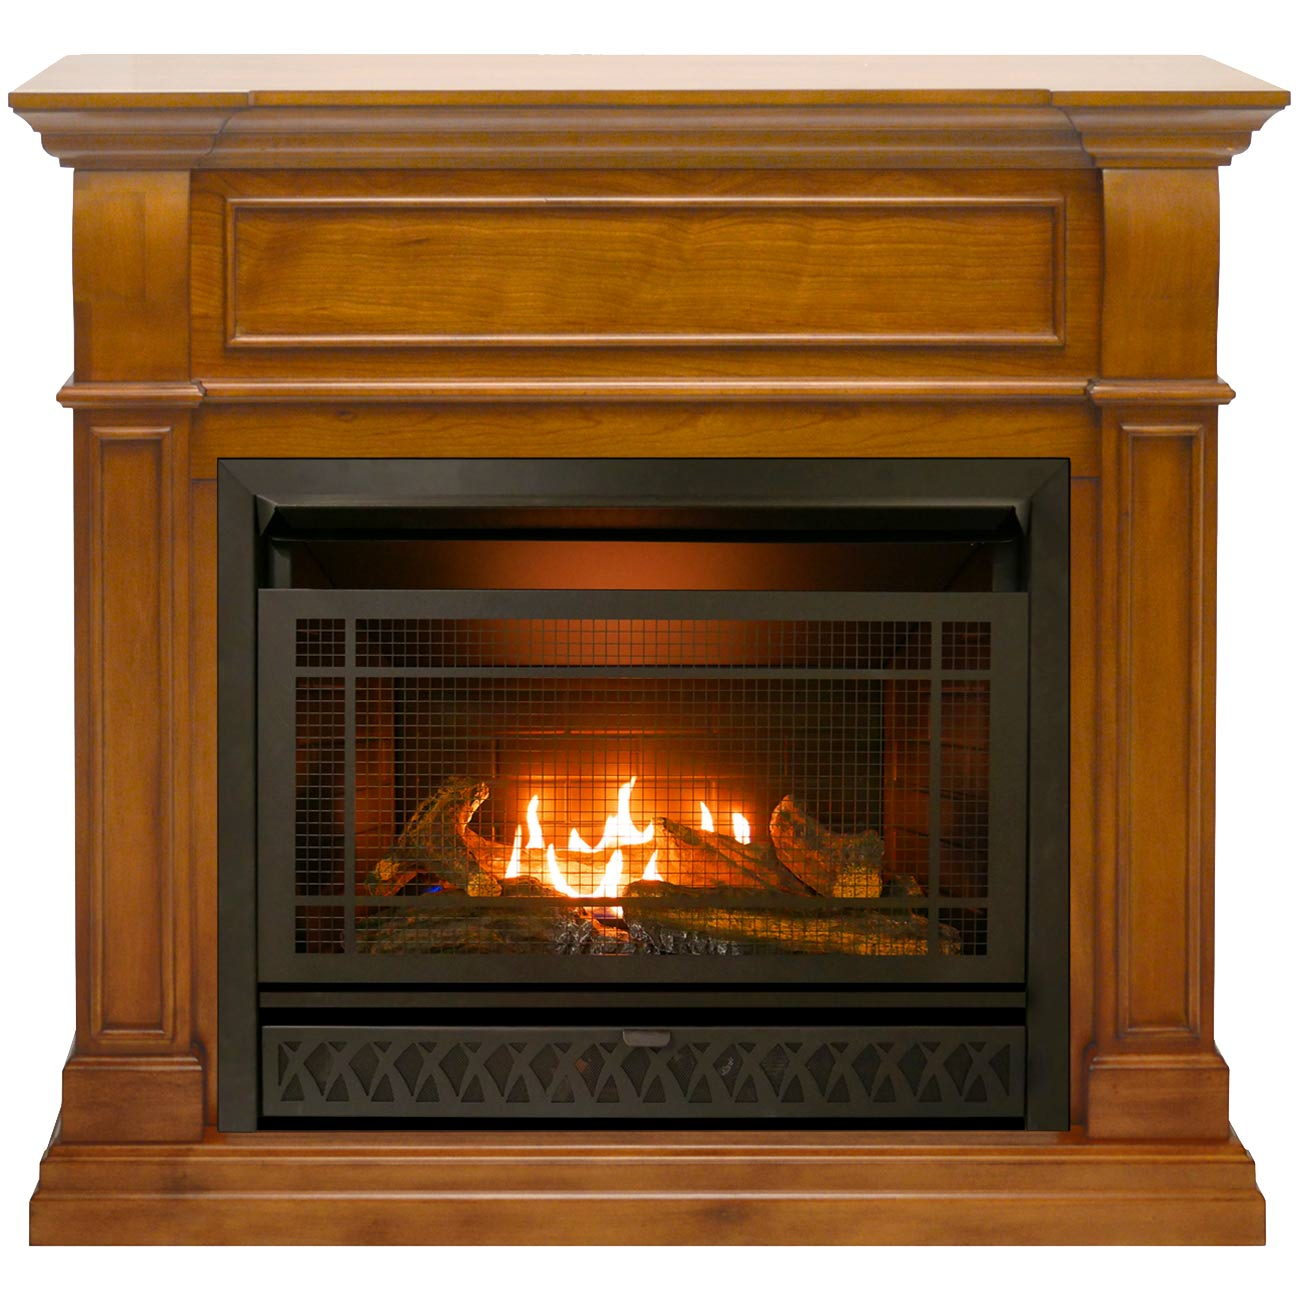 Procom Ventless Fireplace Dual Fuel Fireplace 26 000 Btu